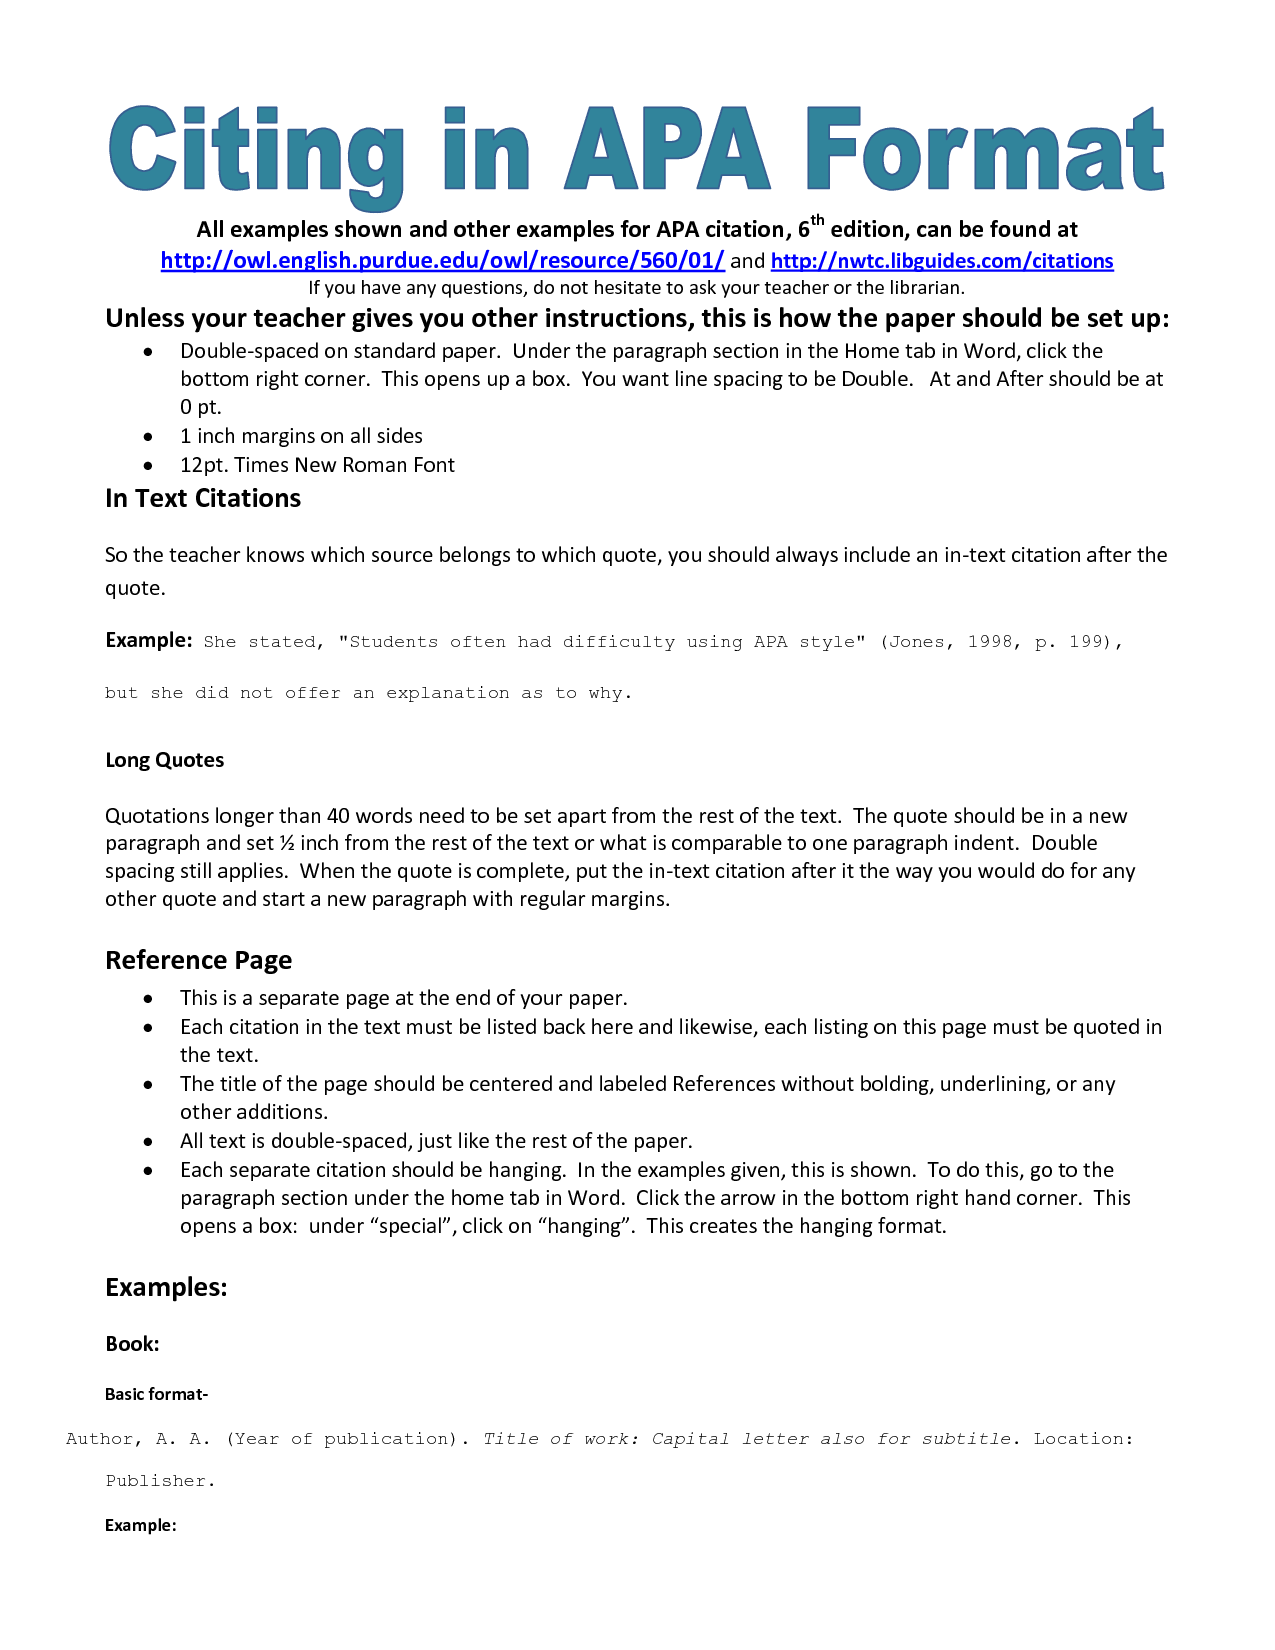 010 Research Paper How To Reference Articles Sensational Apa Cite Web Journal A Article Title In Text Online Format Full